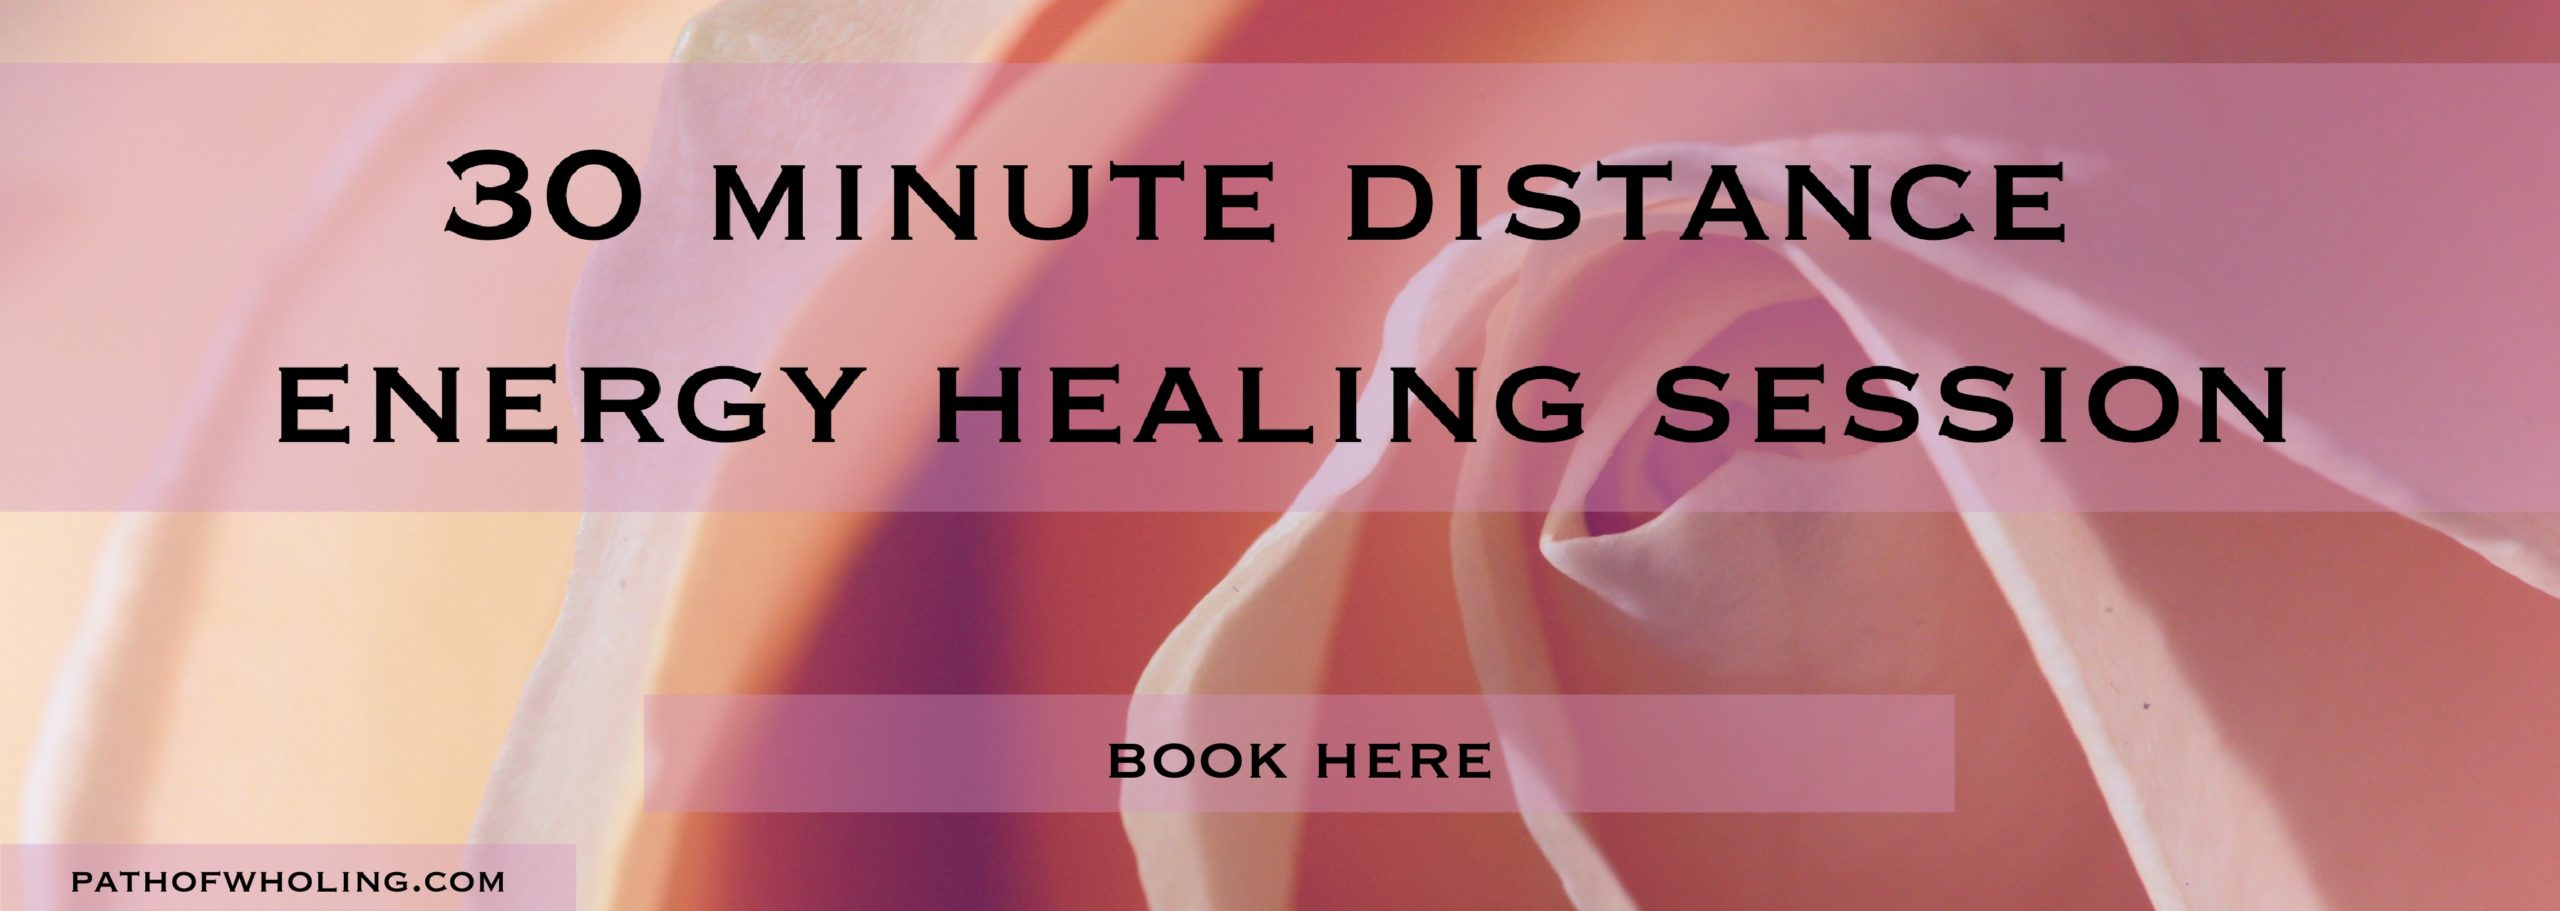 30 minute healing session